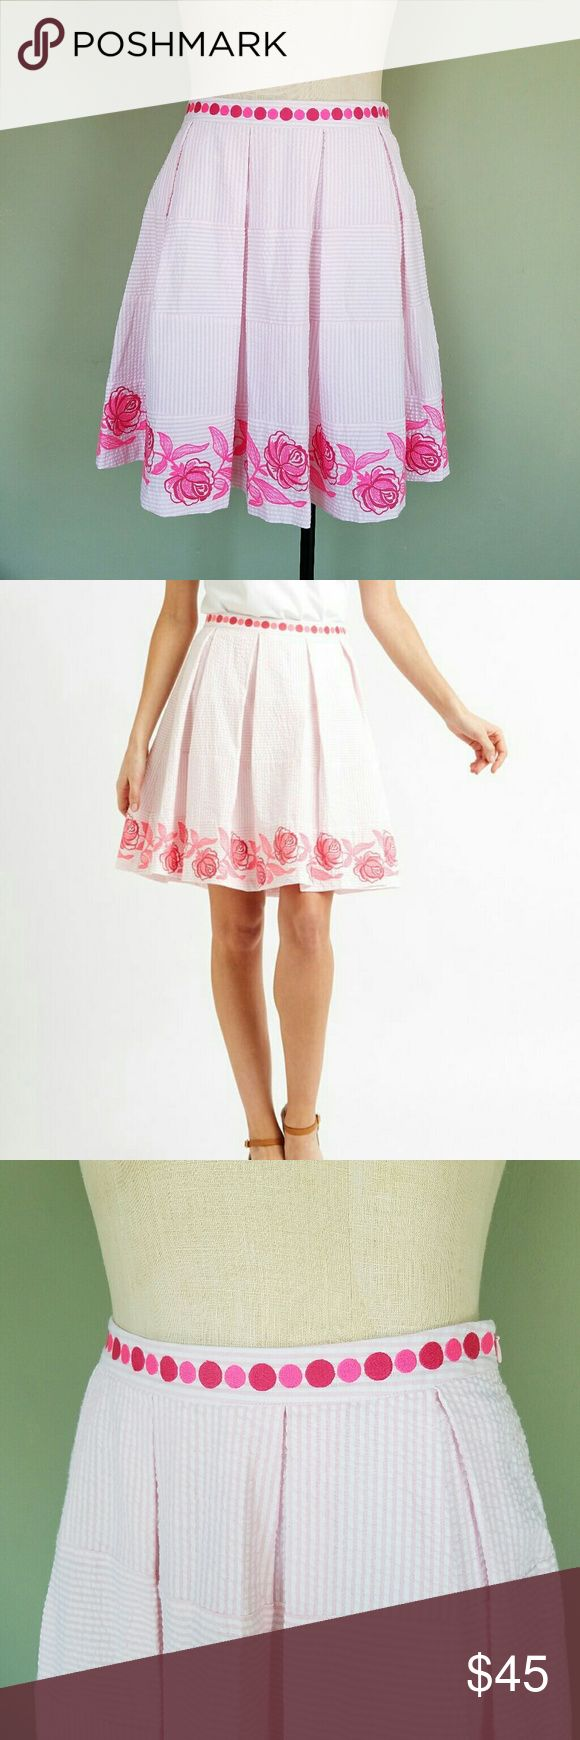 """Vineyard Vines Pink Rose Seersucker Pleated Skirt Vineyard Vines  For Kentucky Derby line. Womens Size 4. Knee length.  """"Crisp pleats define a charming A-line skirt fashioned from breathable cotton seersucker. Girly polka dots pepper the waistline, while a textured rose print details the hem."""" Lined. 100% cotton seersucker. Excellent condition! Vineyard Vines Skirts"""